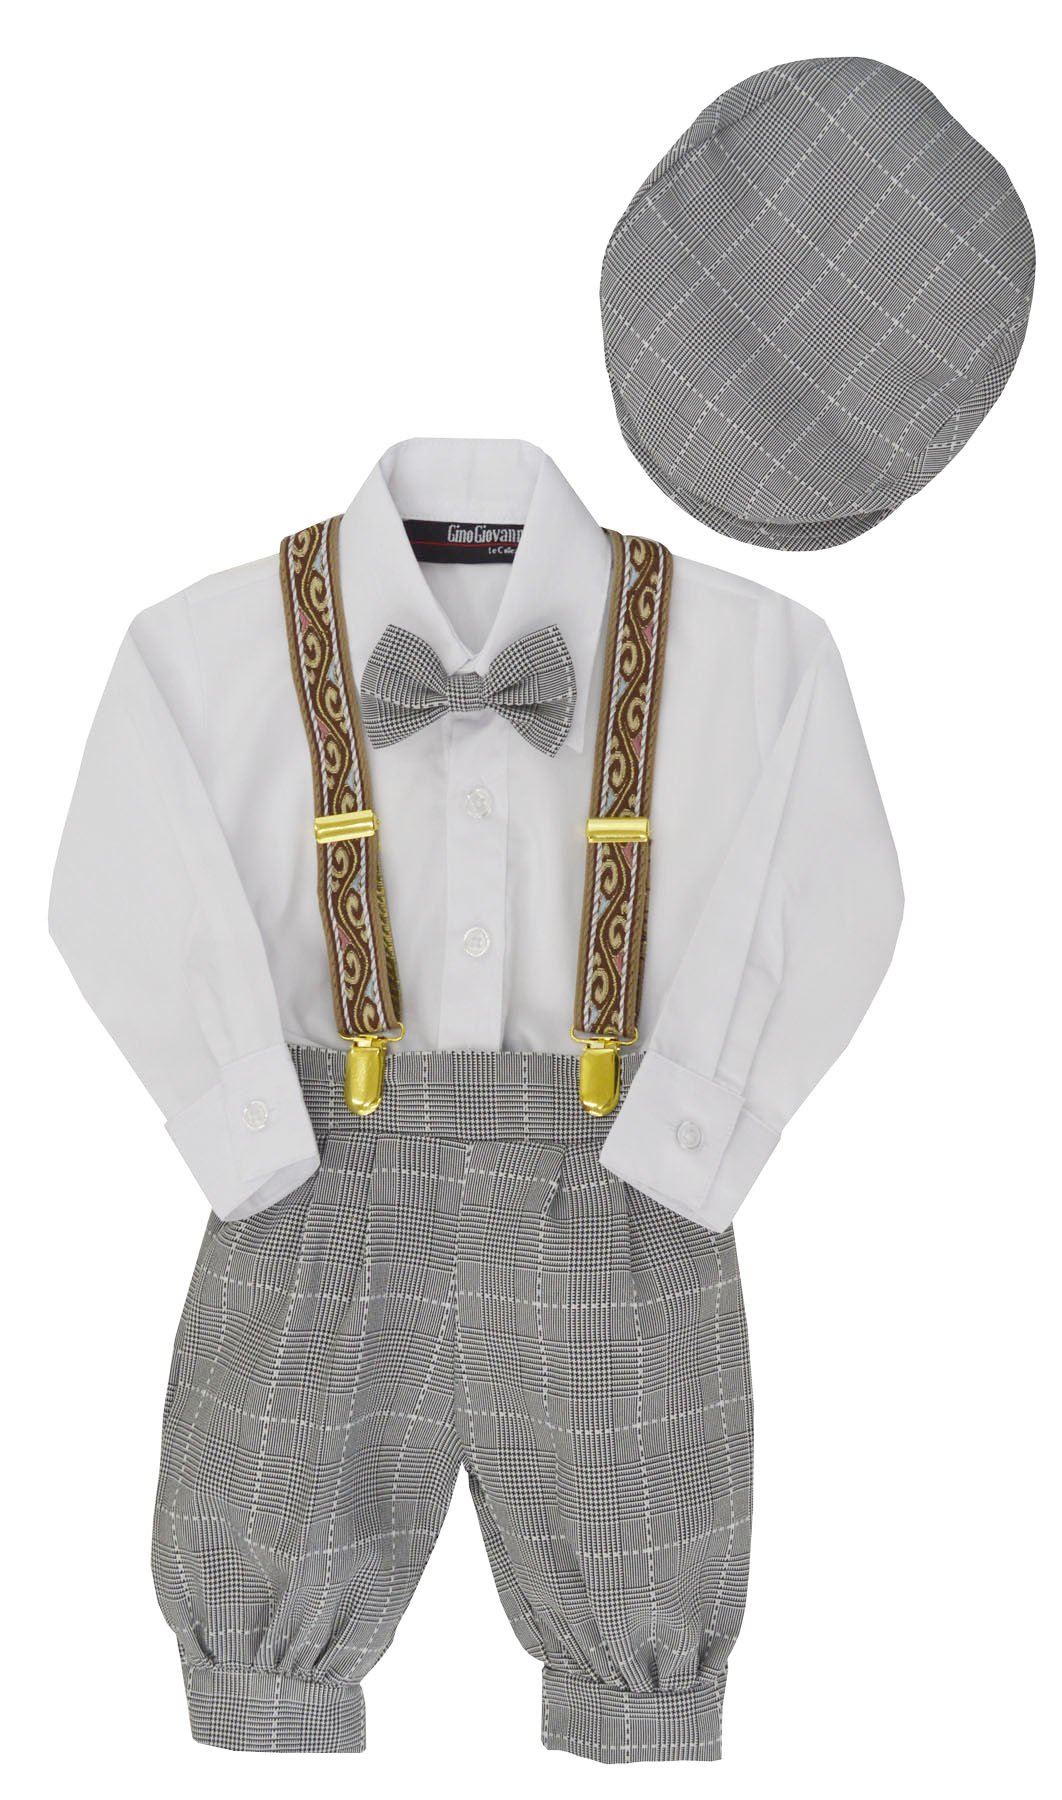 G284 Baby Boys Vintage Knickers Outfit Suspenders Set (3T/3, Black/White)